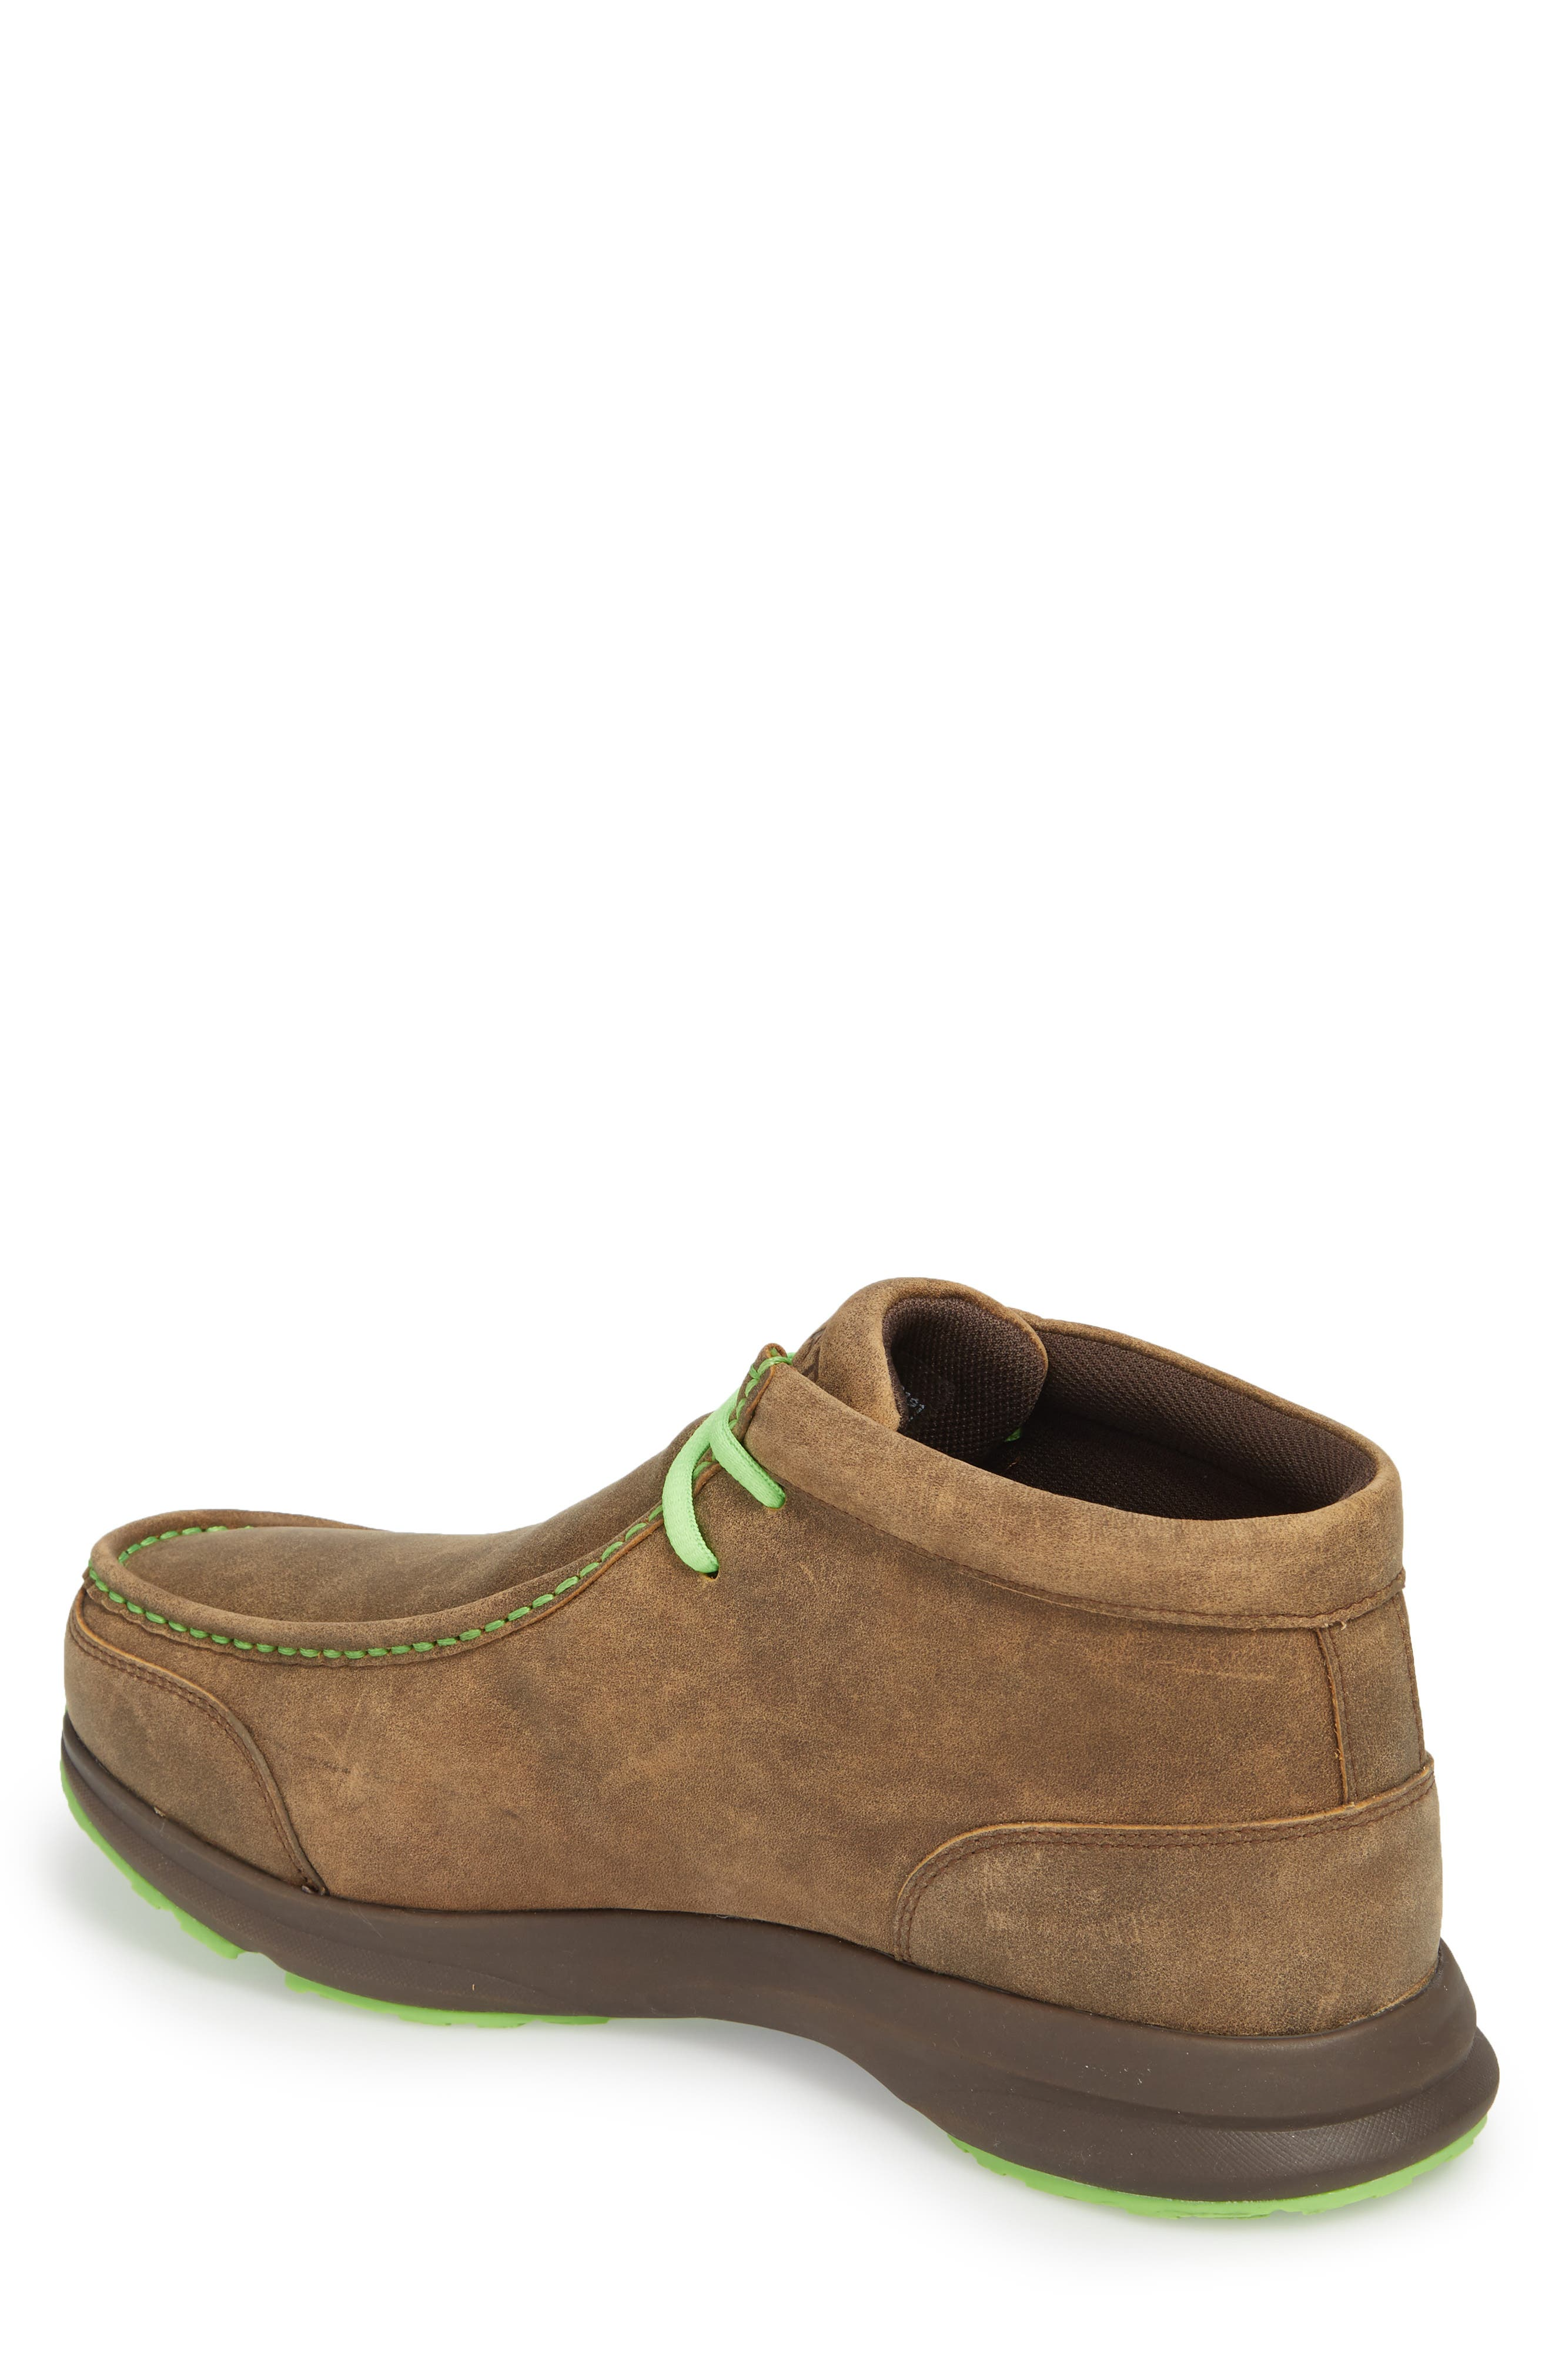 Spitfire Chukka Boot,                             Alternate thumbnail 2, color,                             Brown Bomber Leather